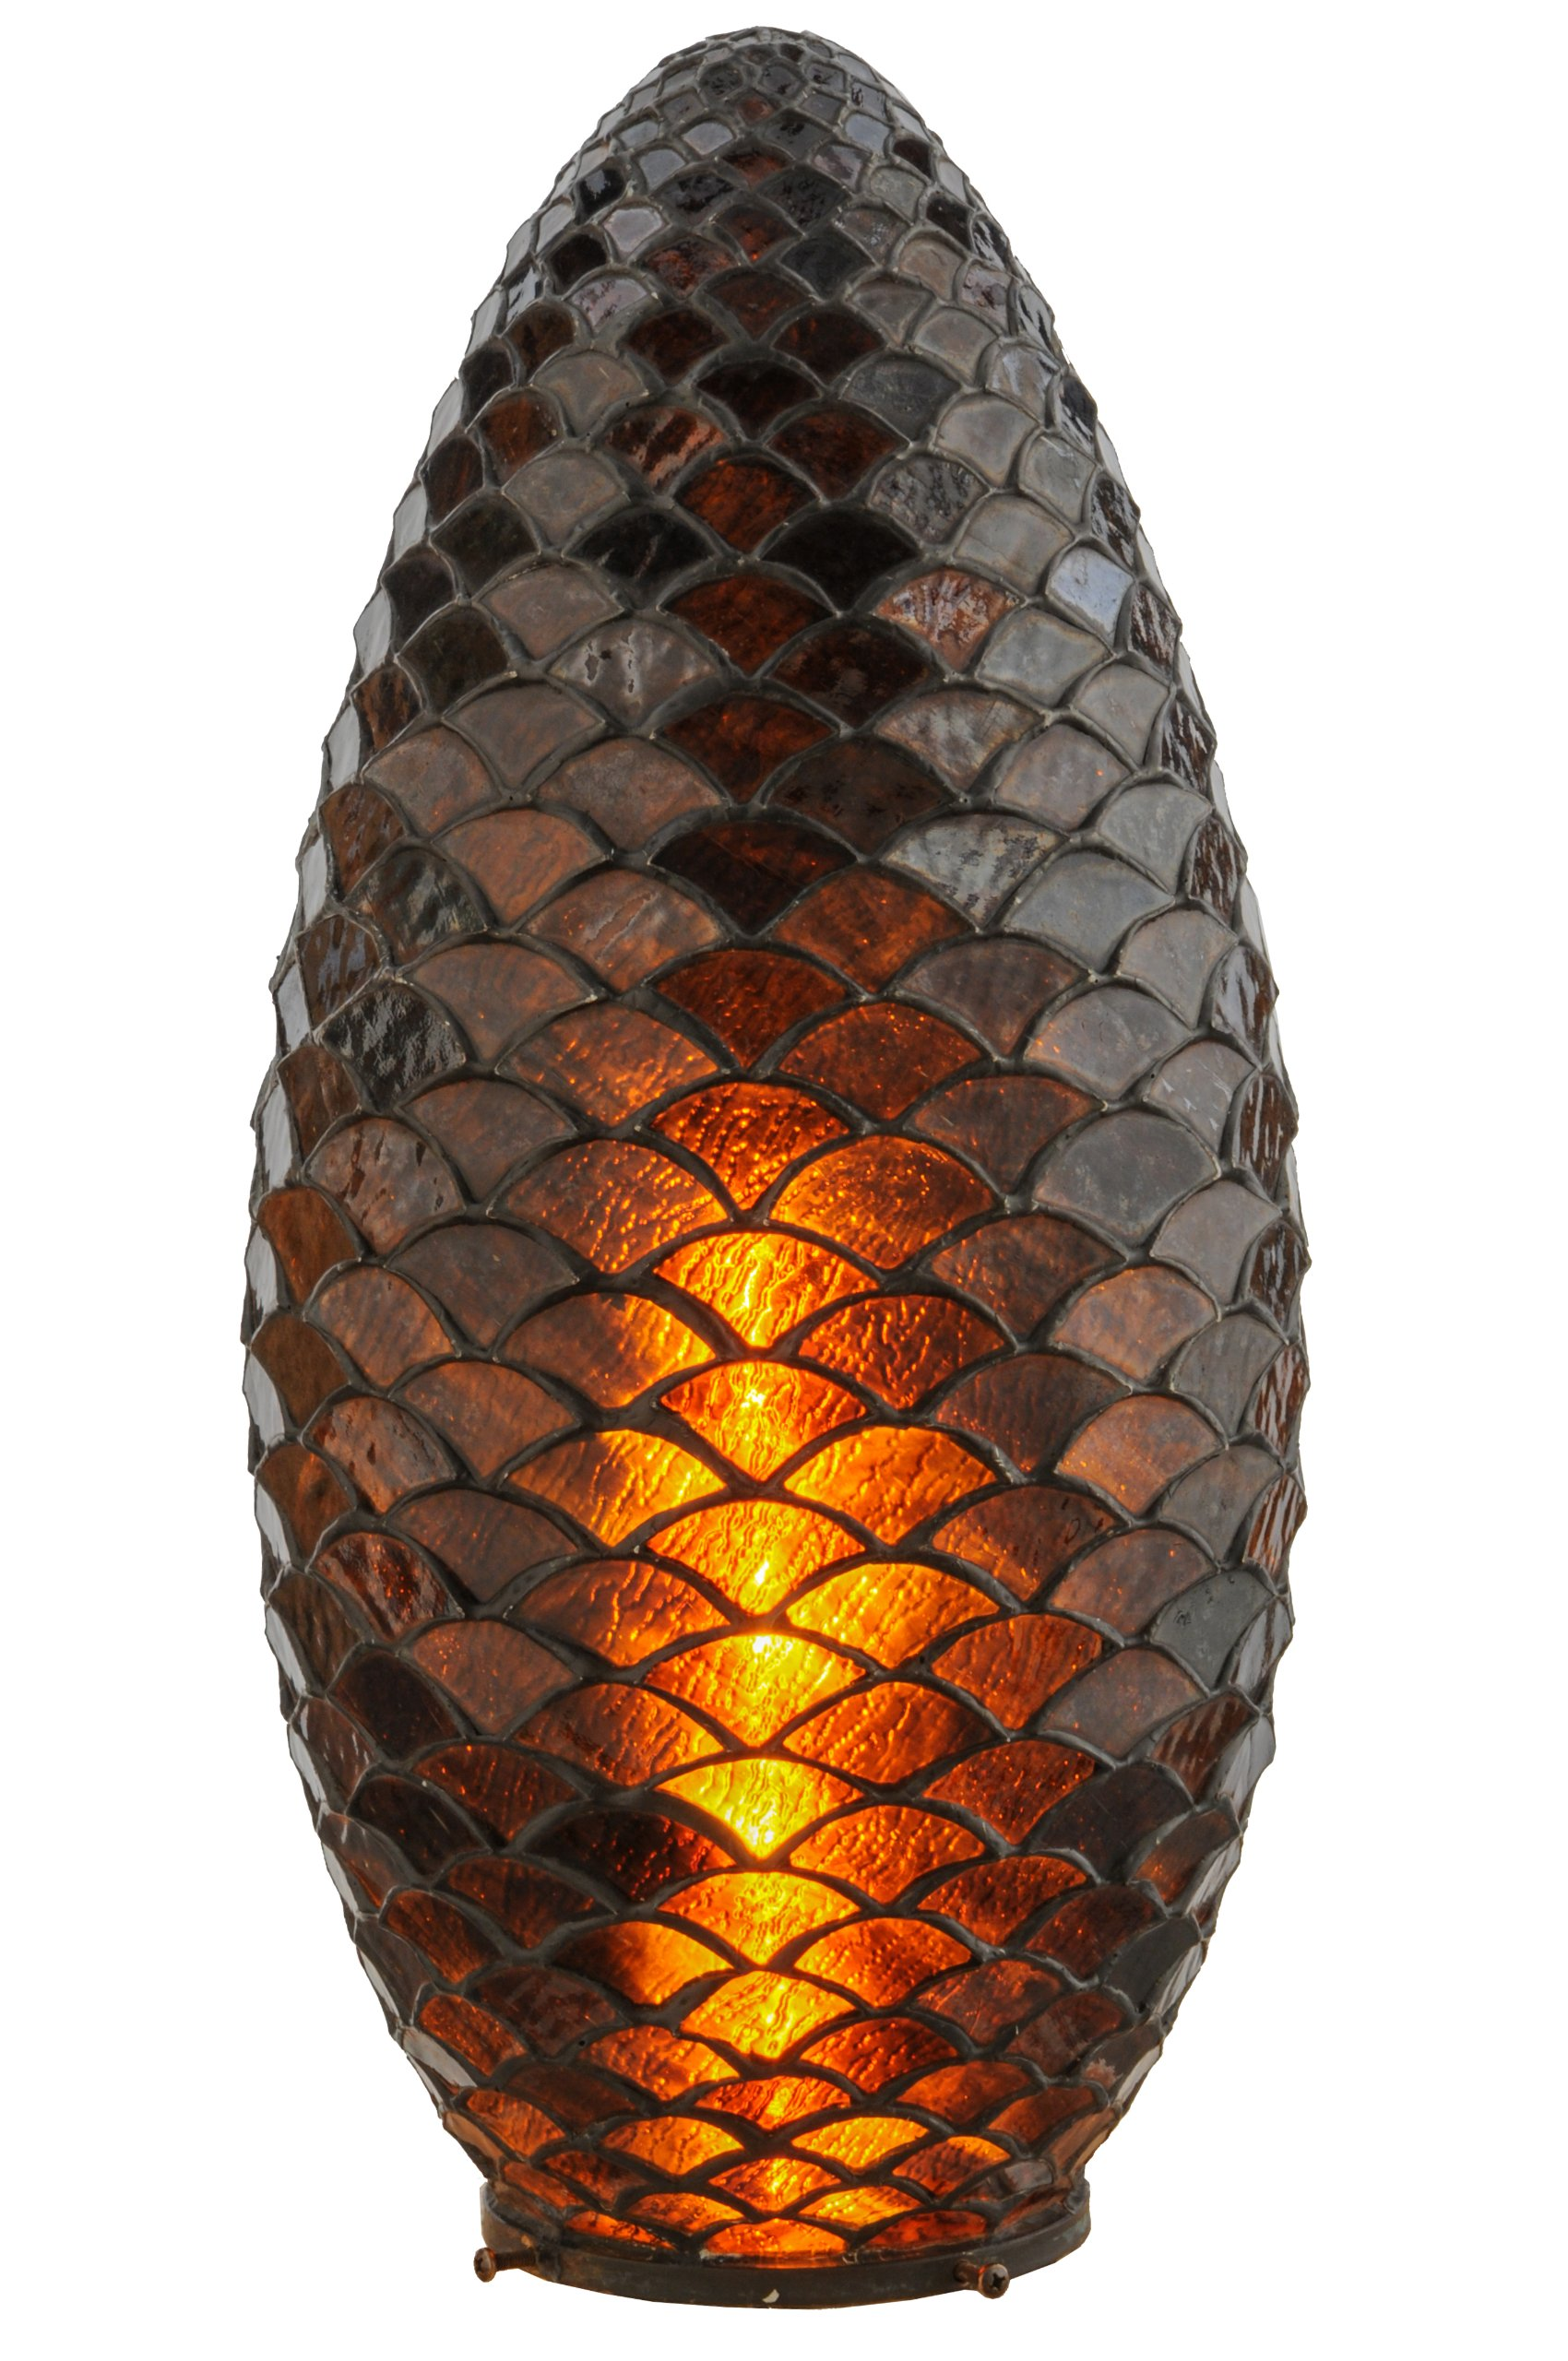 Meyda Home Decorative Art Stained Glass Lamp Fixture9.5''W Tiffany Pinecone Replacement Shade